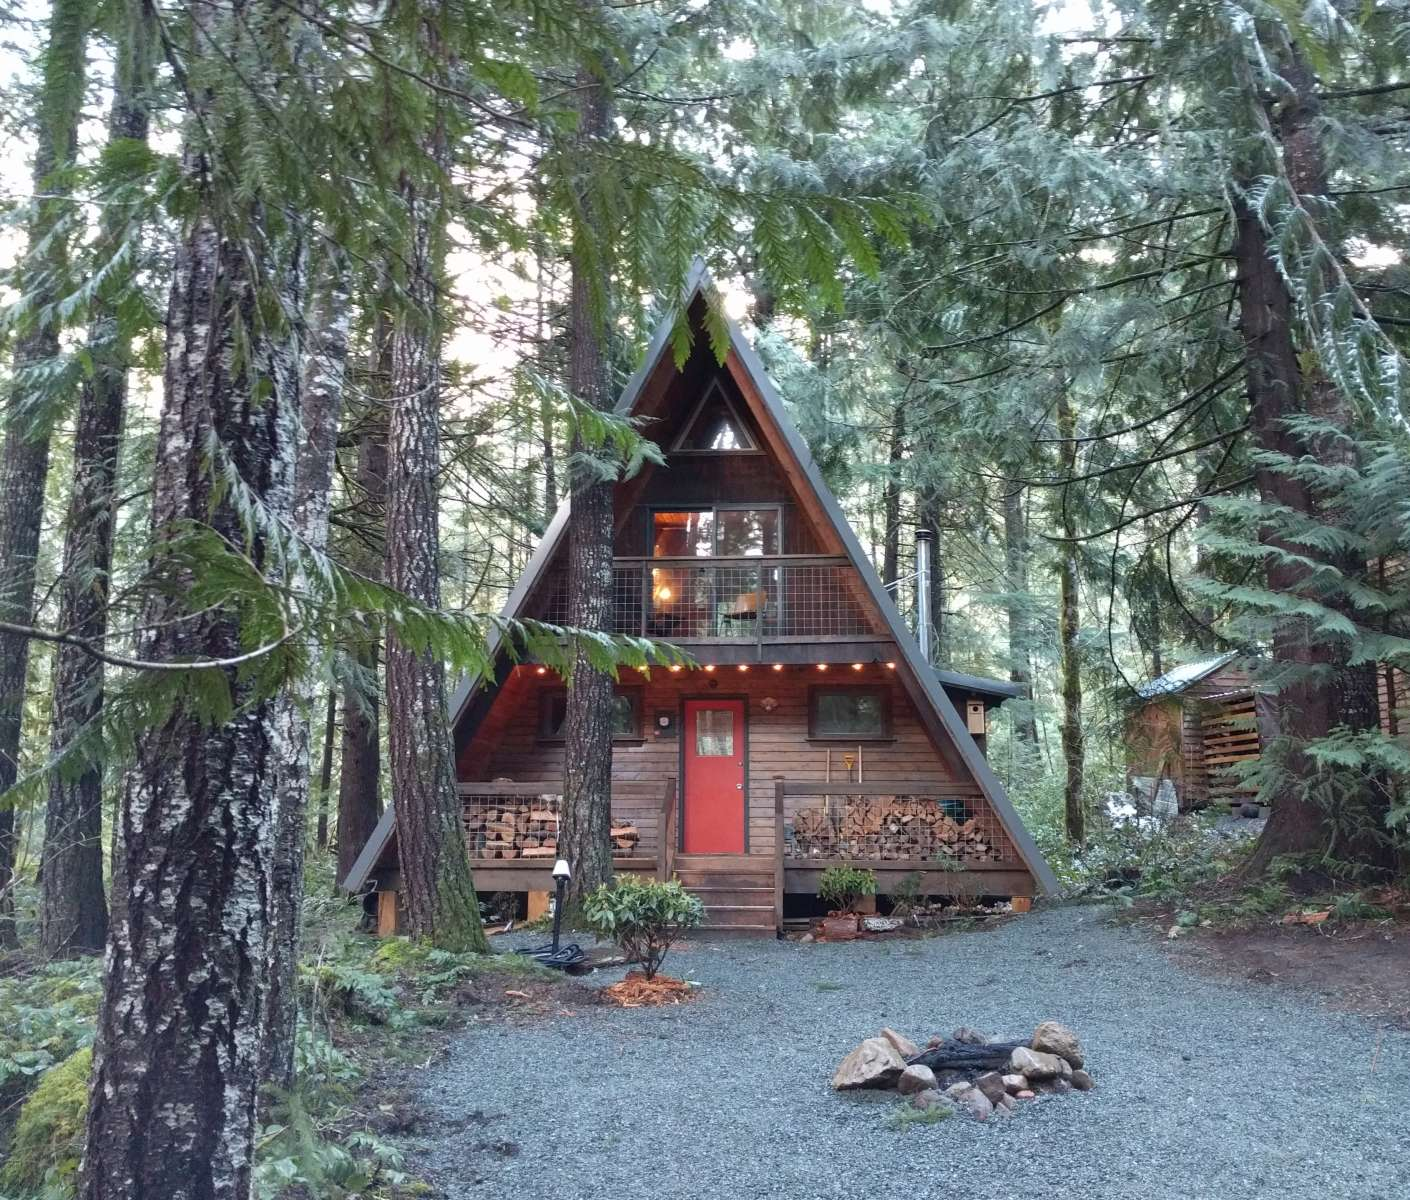 lake outhouse cabins furnish camping manzanita cabin and magazine mt reservations night fire solar ring stove hood in lighting required travel the sunset best an wood cooktop sky are propane a outside